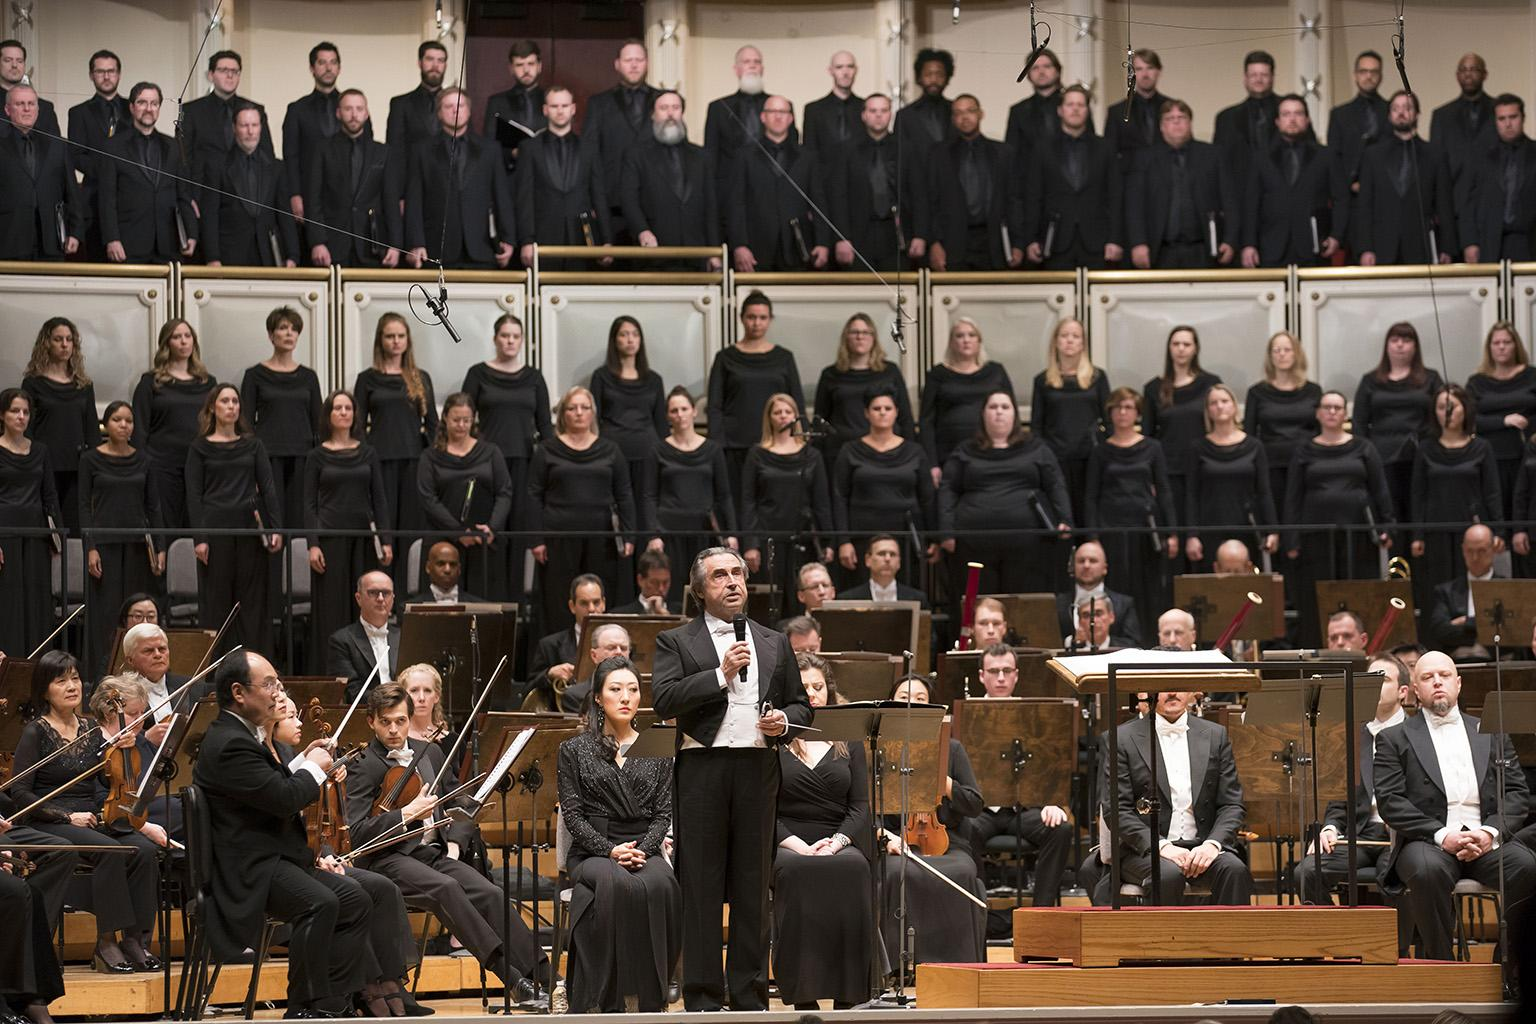 Zell Music Director Riccardo Muti dedicated the Thursday, Nov. 8 performance to the victims of the Thousand Oaks shooting. He asked the audience and musicians to stand for a moment of silence before the first notes of Verdi's Requiem. (© Todd Rosenberg)